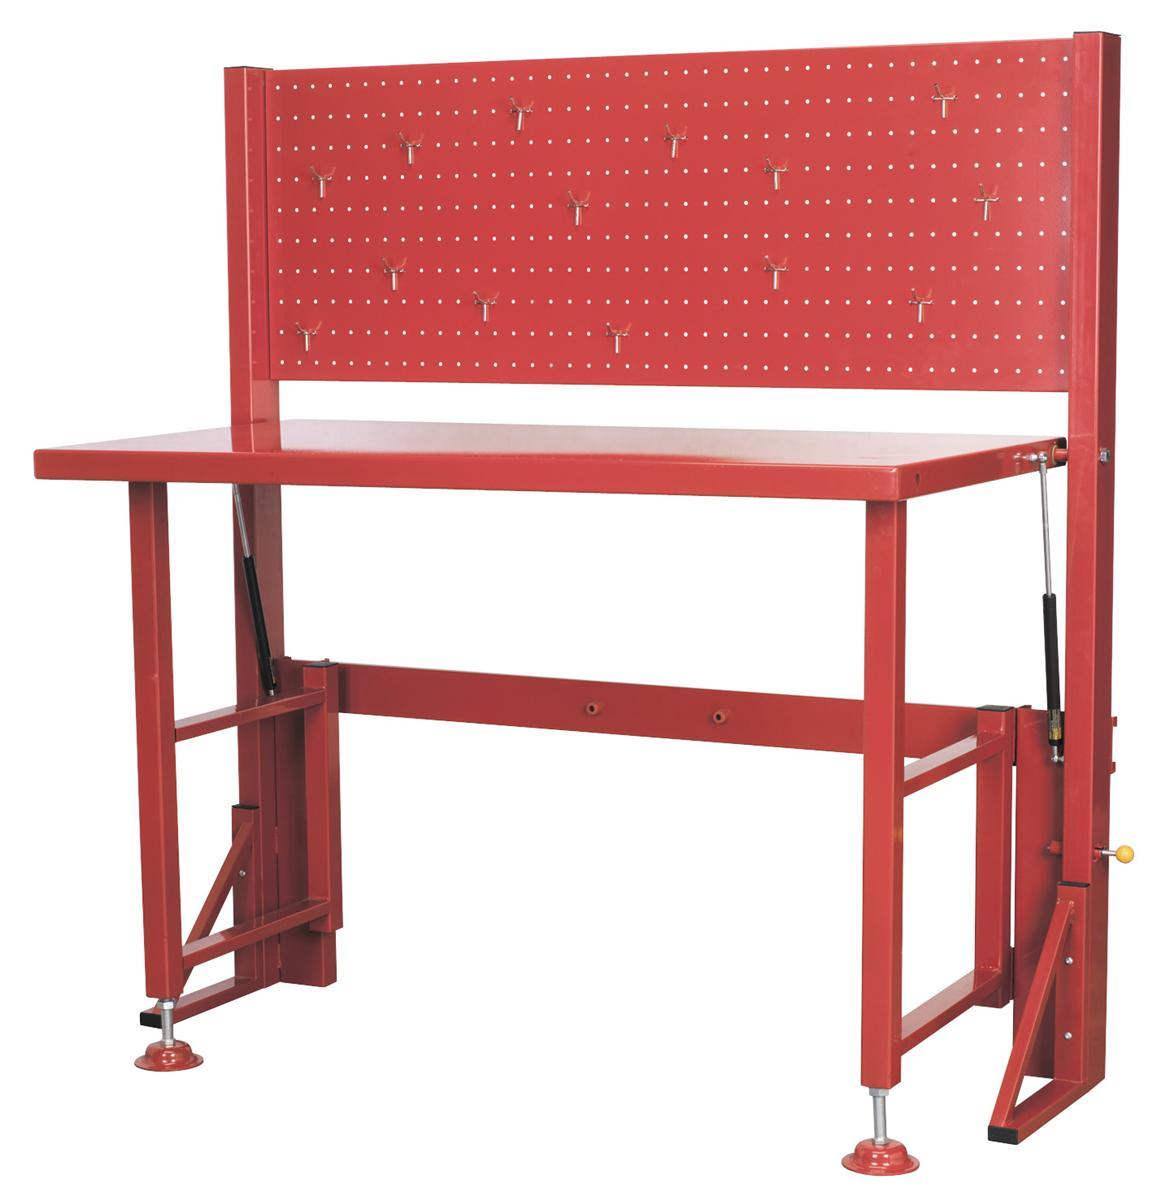 Metal Workbenches | Metal Workbench | Metal Workbench Drawers